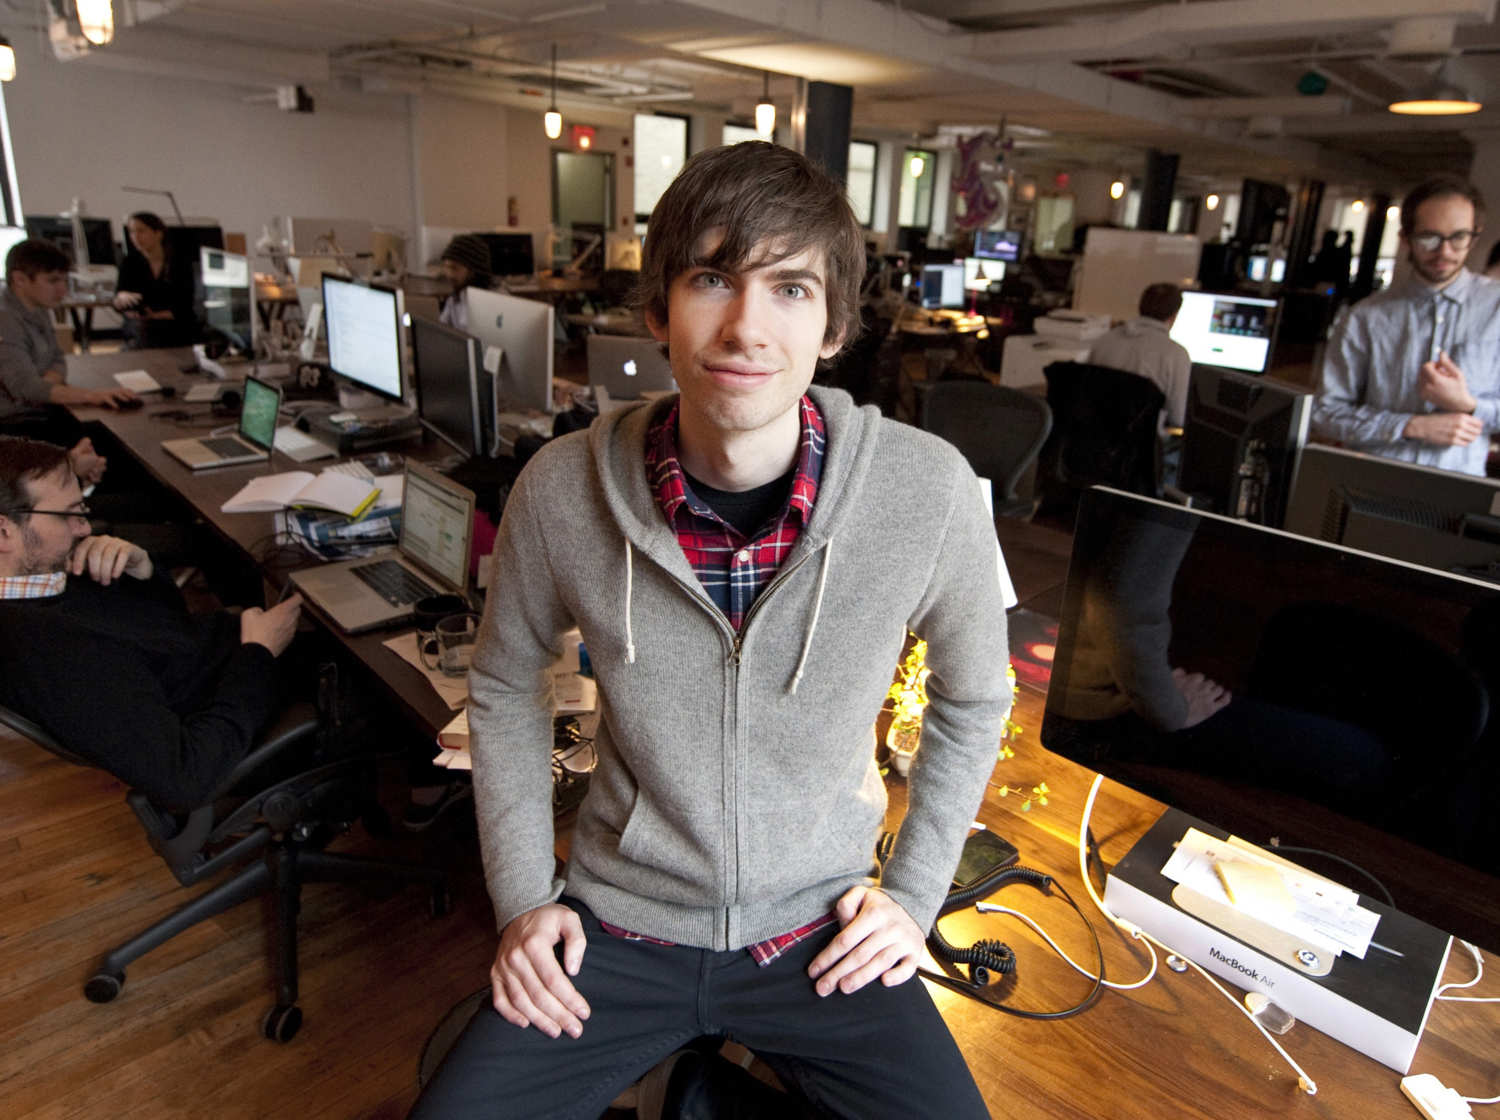 5. David Karp  When David Karp was 15, he dropped out of high school to be homeschooled on New York's Upper West Side. At 17, he moved to Tokyo to work for UrbanBaby, an online parenting advice site with highly trafficked message boards full of urban-dwelling moms and dads. He founded Tumblr at 20. Tumblr is a Web platform inspired by the tumblelog, a blog format which enables short-form, mixed-media posts. He is also the fist-bumping with U.S President.